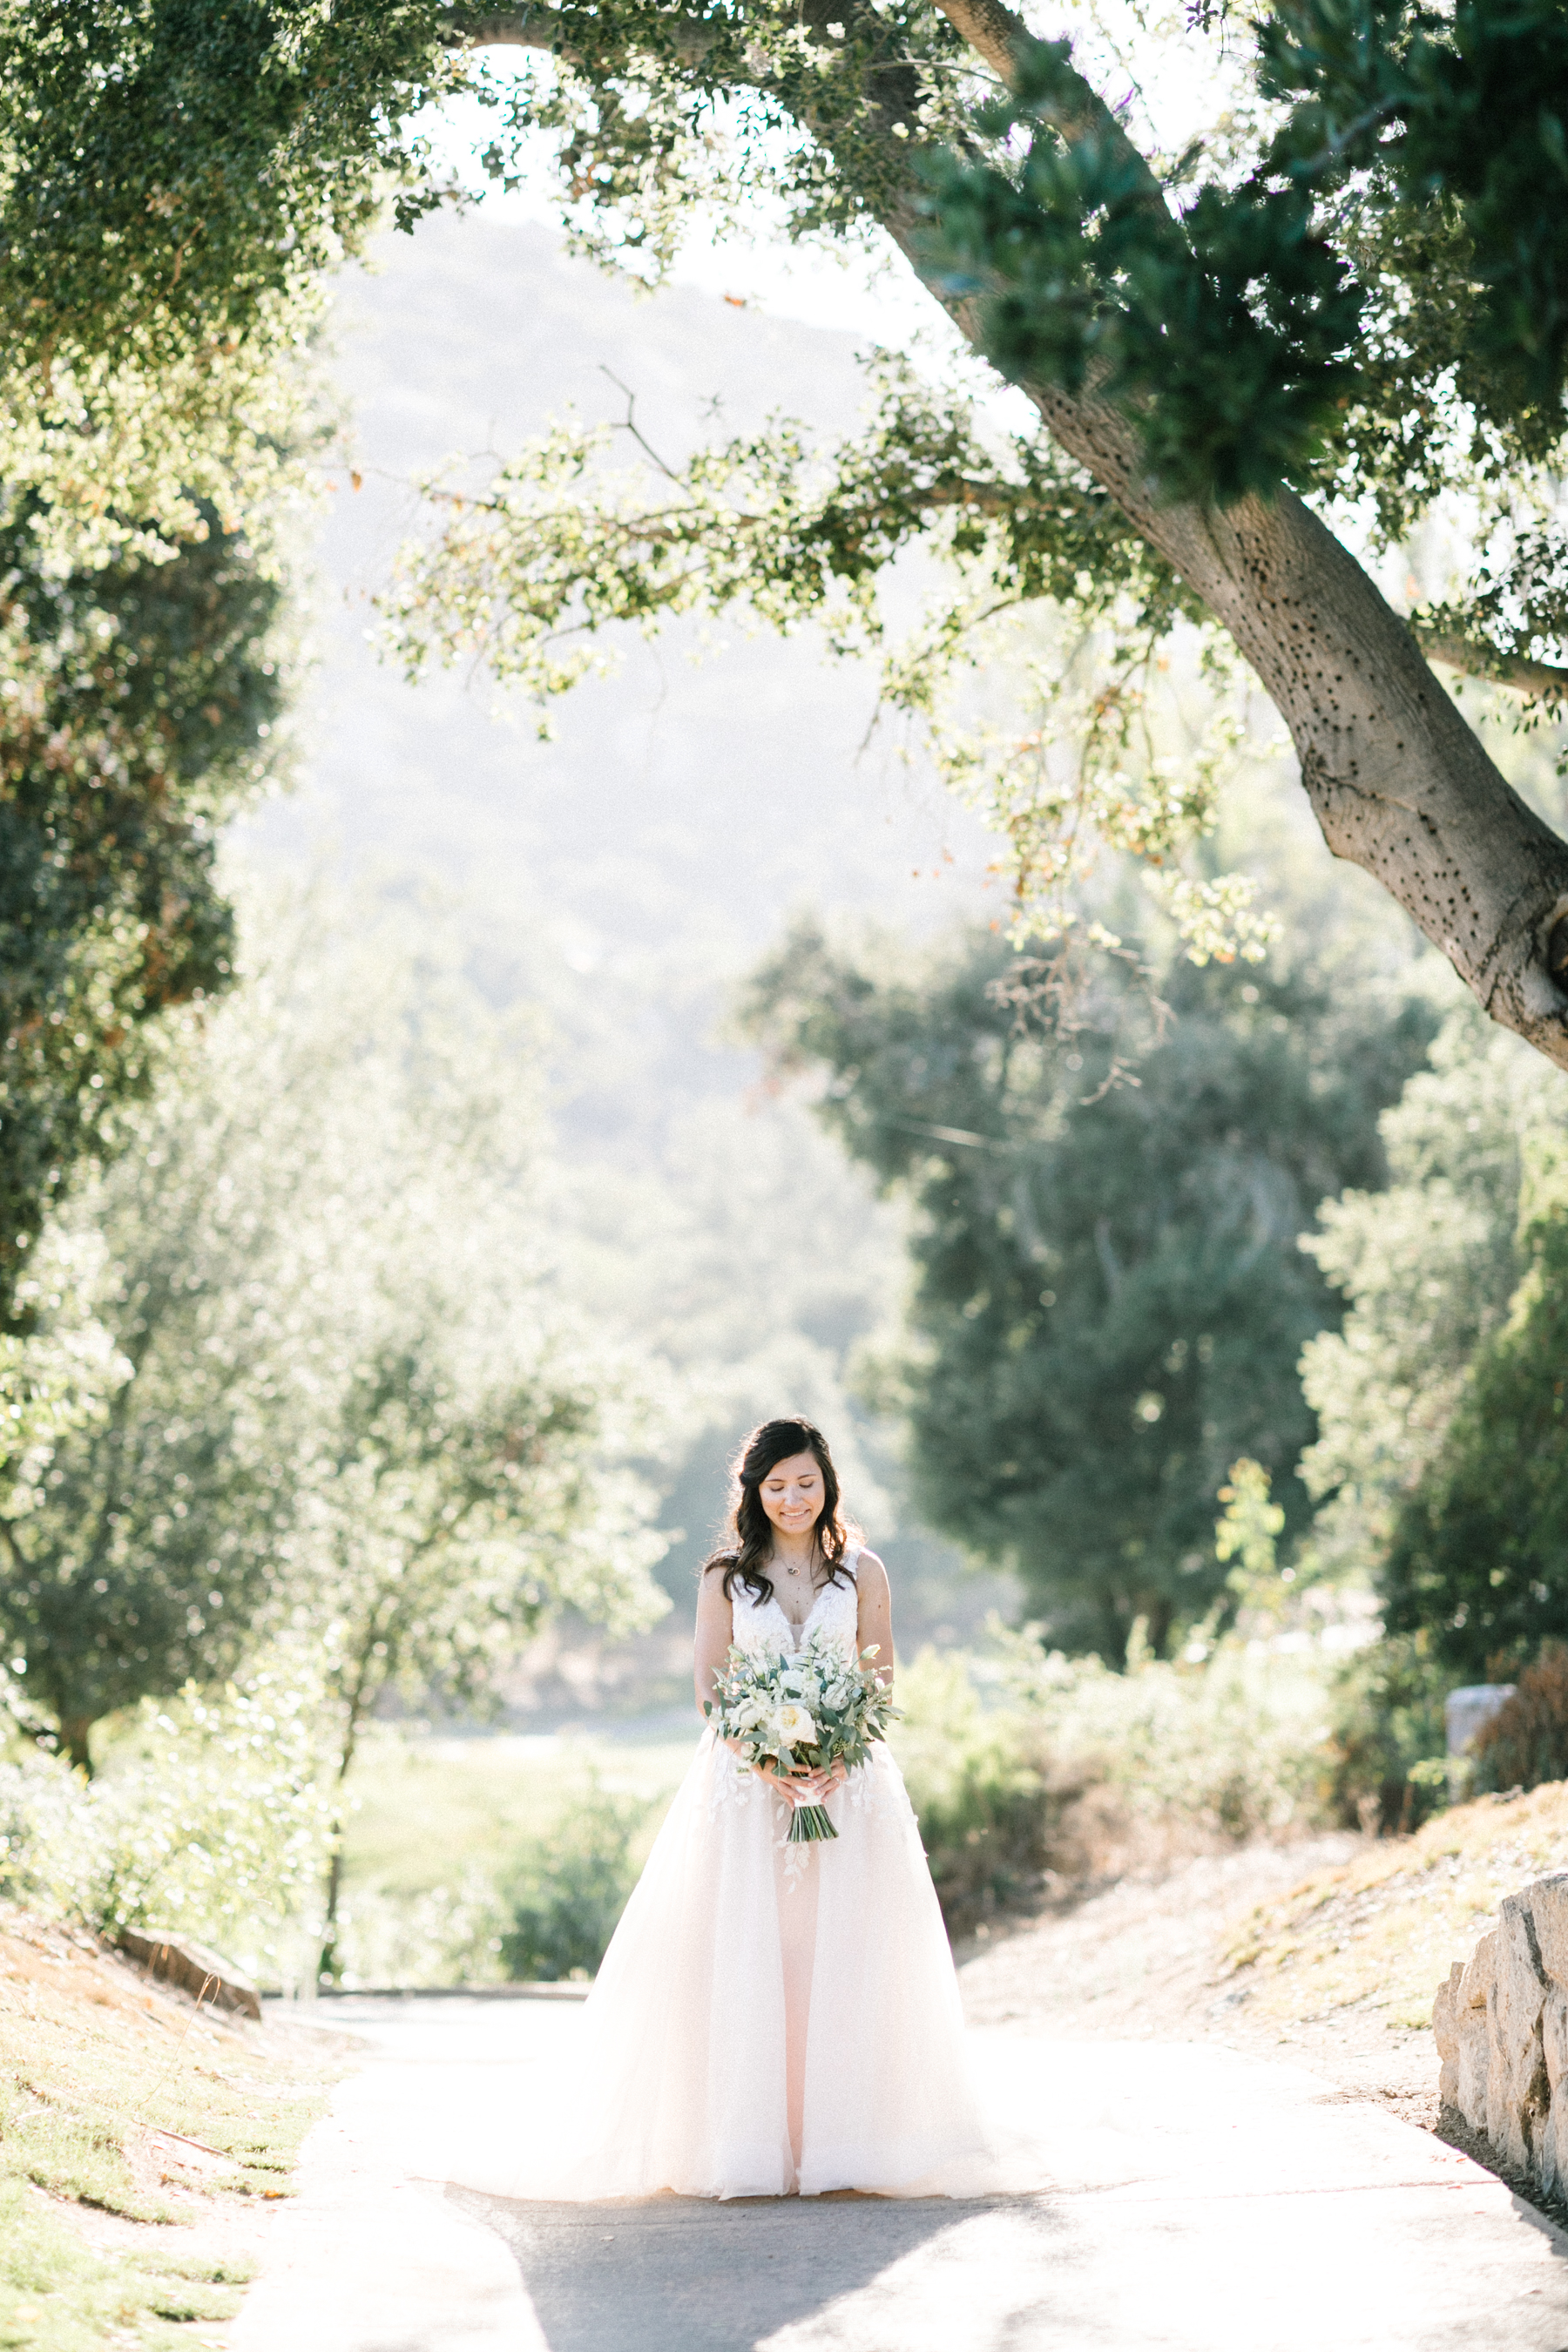 Jordan and Alex's Mt. Woodson Ramona Wedding Great Woodland Photography 8-31-19-25.jpg